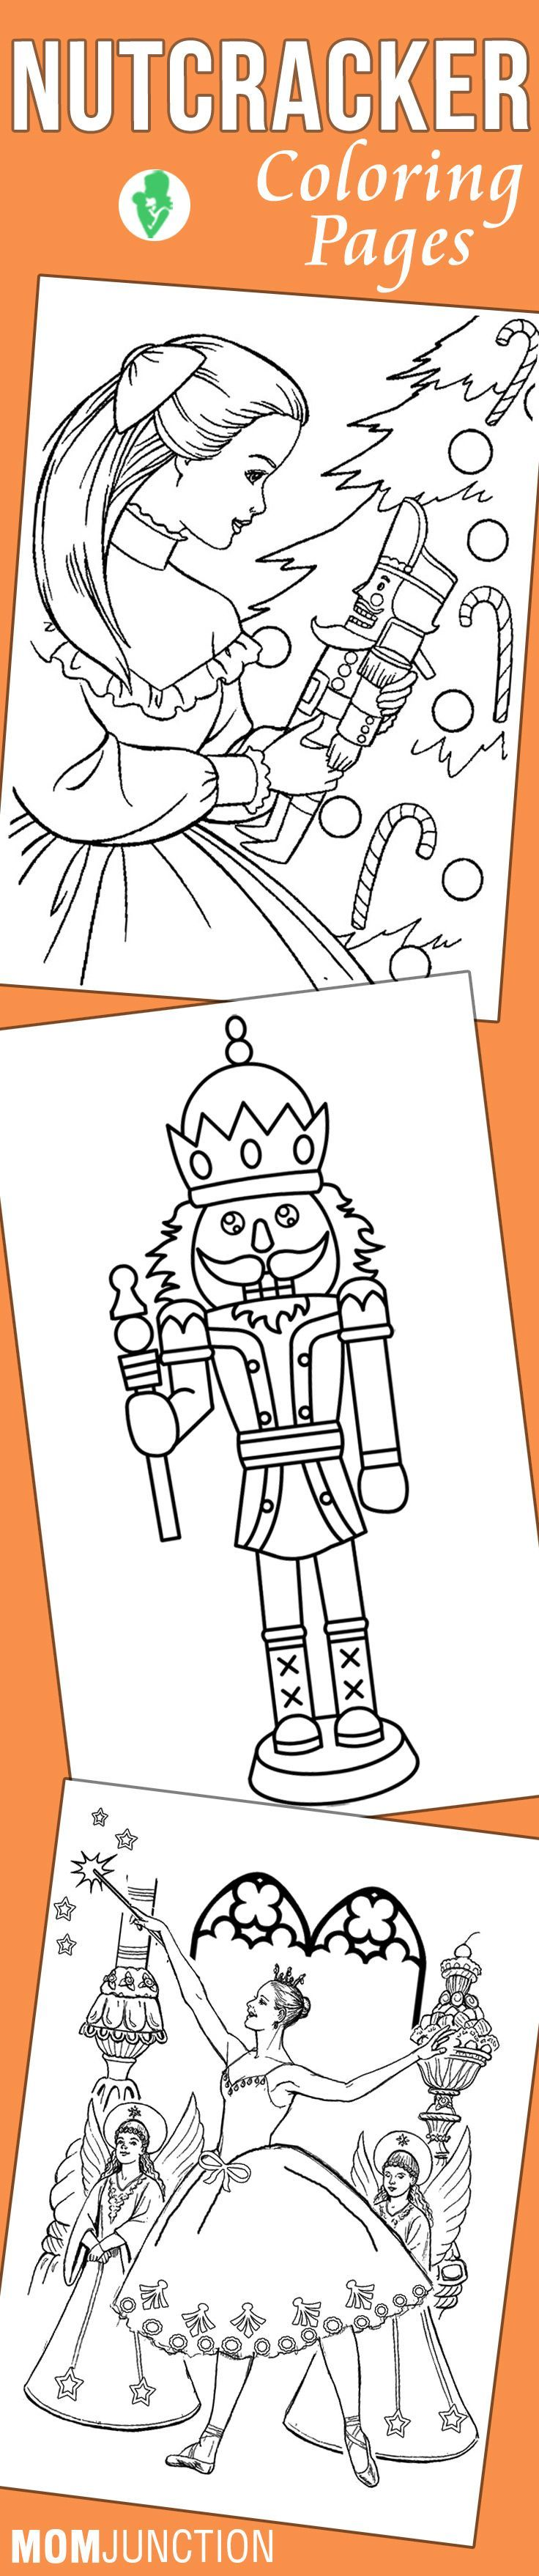 Top 10 Nutcracker Coloring Pages For Your Little Ones